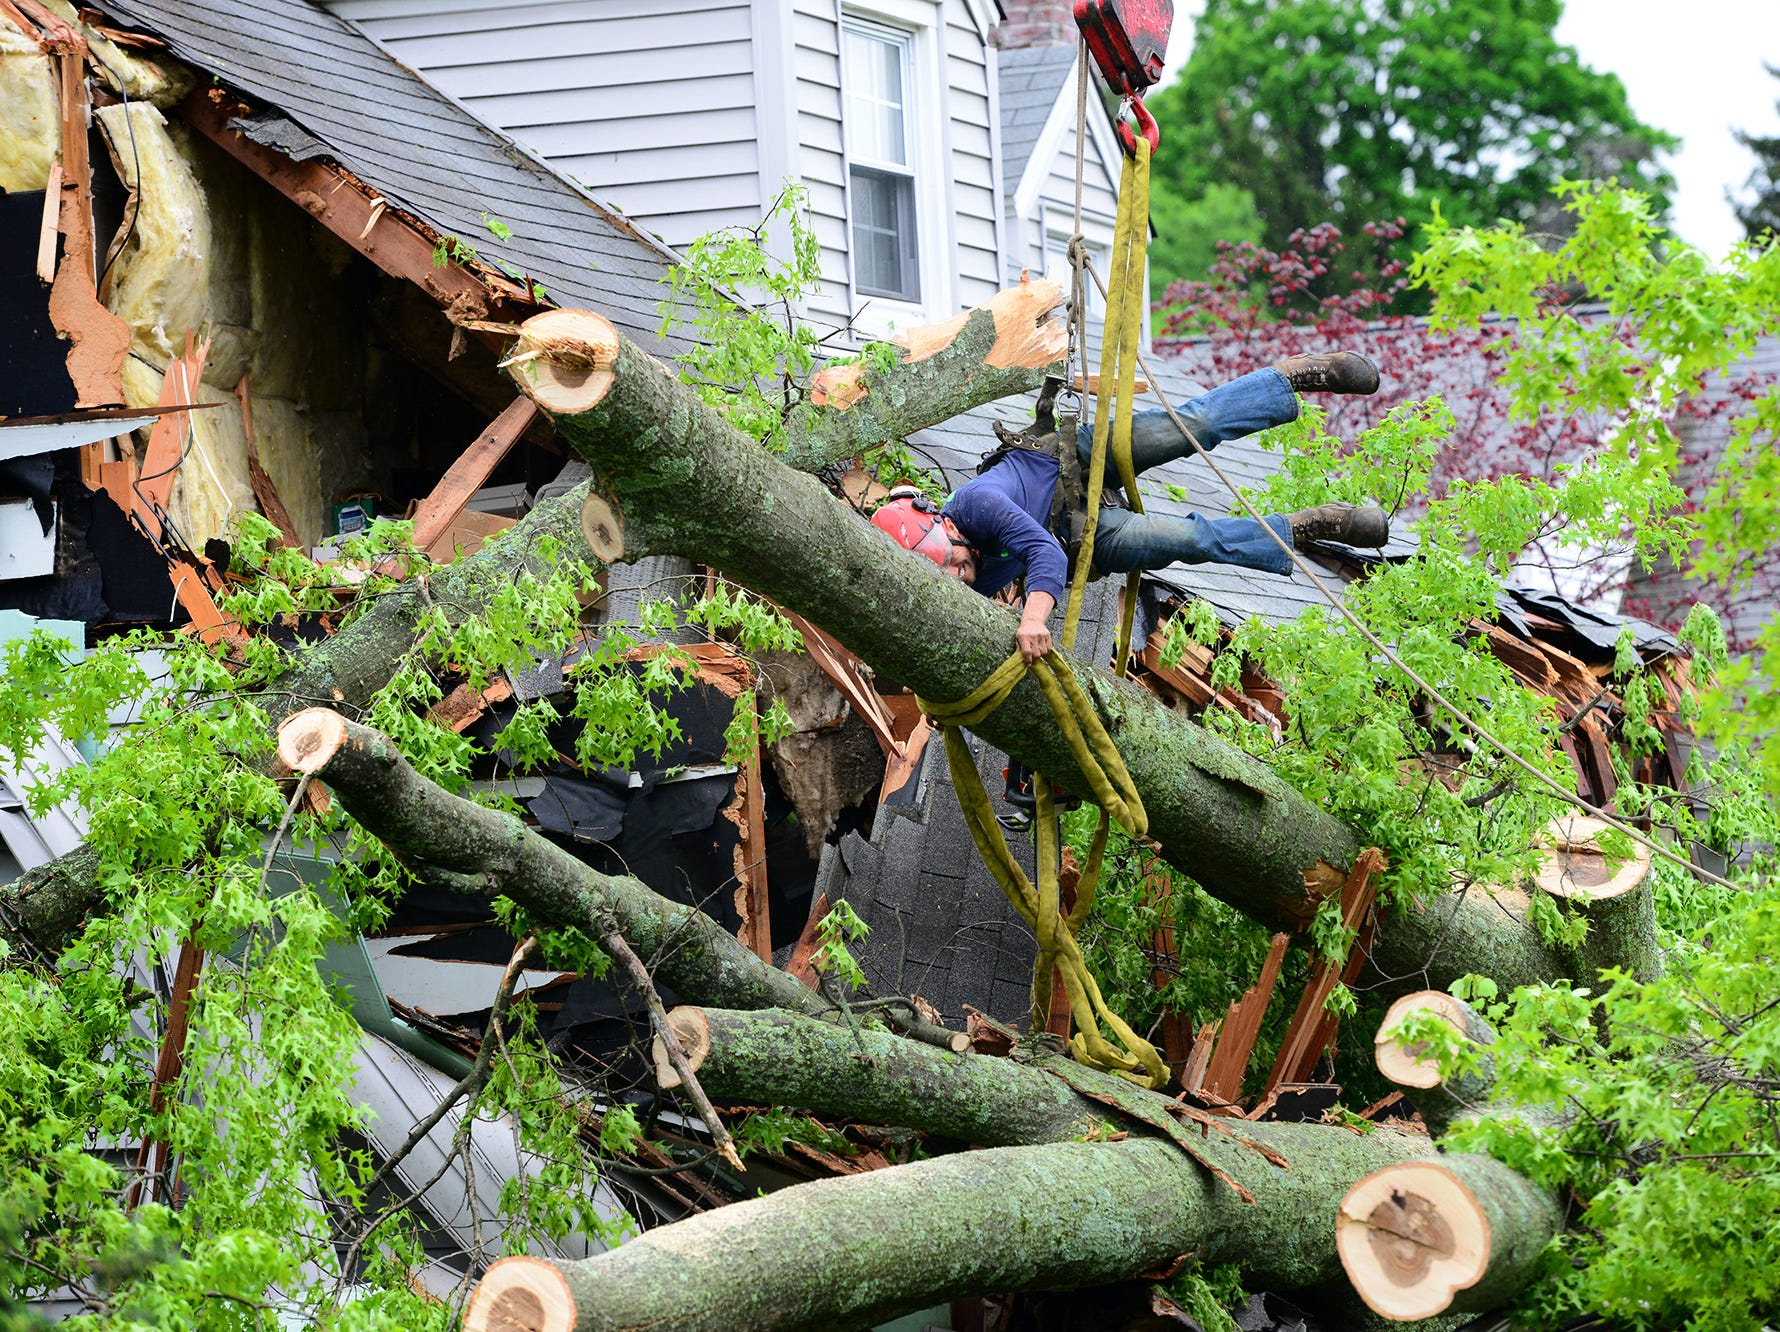 A contractor for a tree removal service clears a tree which uprooted and fell on a house and car at a home on Bernard Place in Ho Ho Kus on Wednesday May 16, 2018. One person was trapped in the car for one and a half hours while they waited for PSE&G to cut the power to the live wires that fell around the car, according to Lisa Brummel, a neighbor.